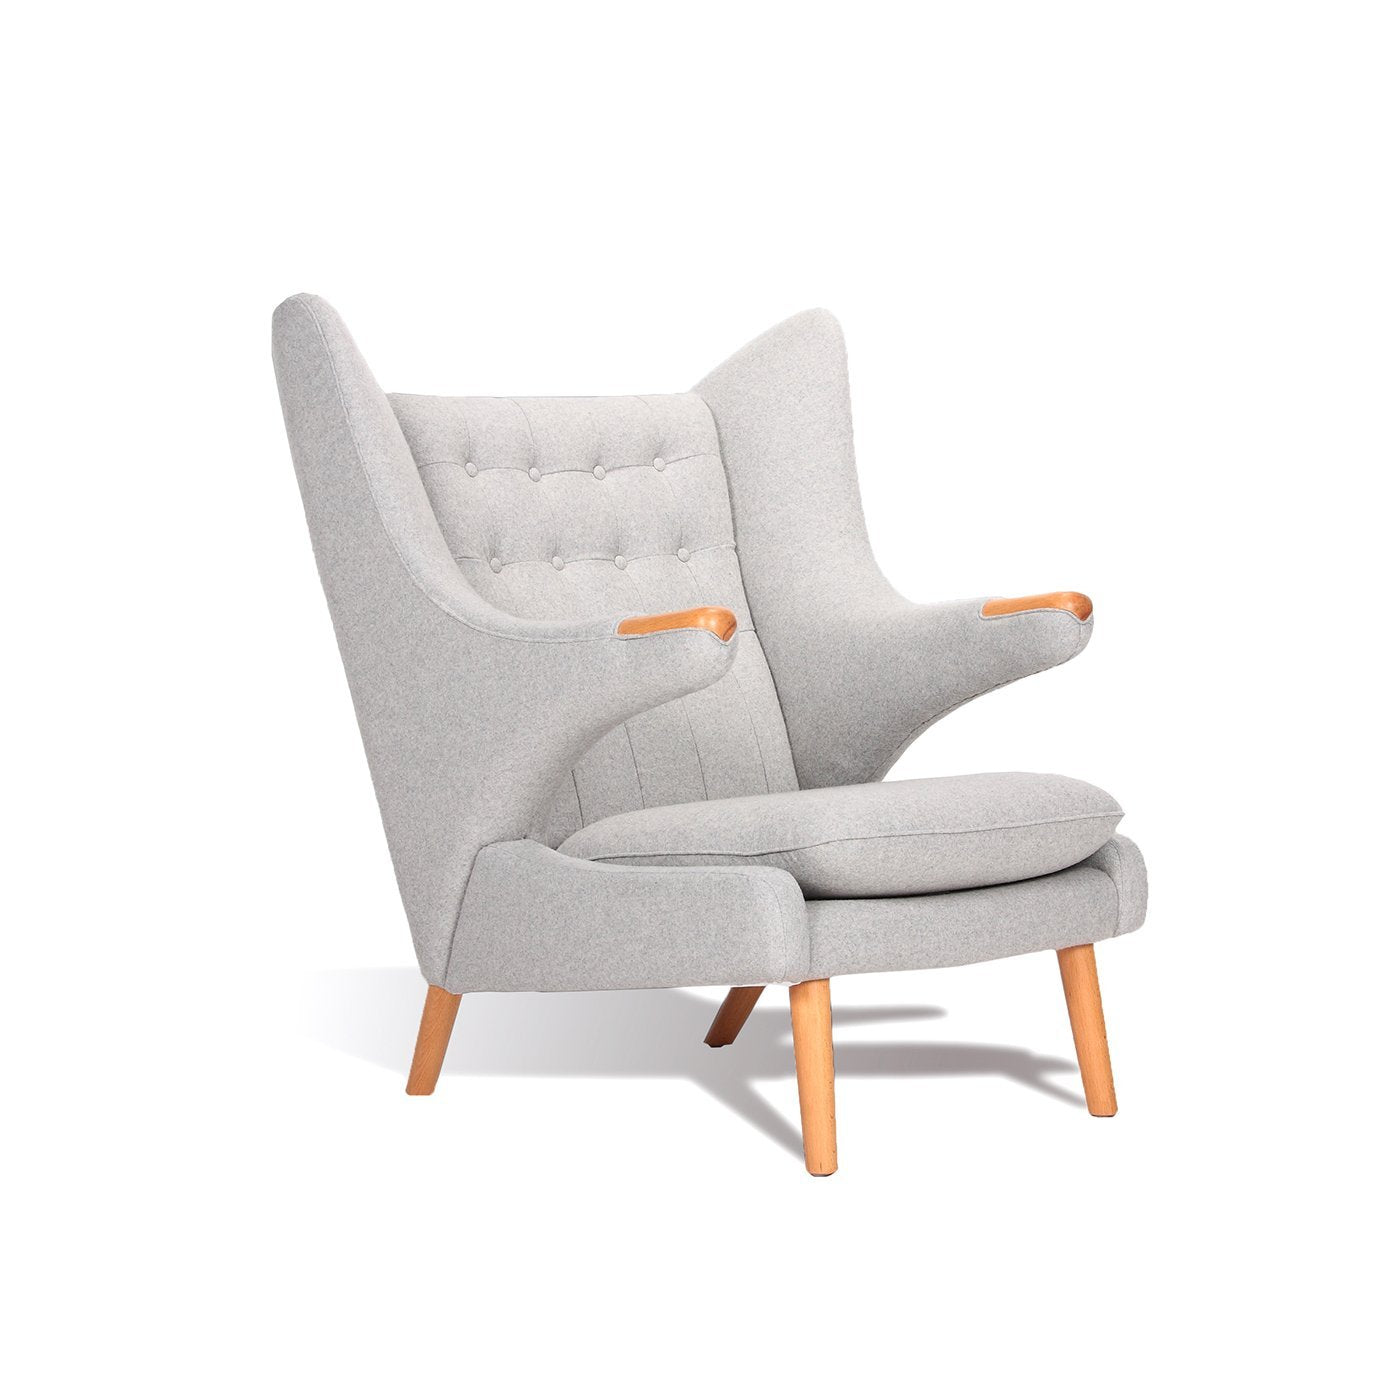 [FB759LGREY1] The Olsen Lounge Chair sale